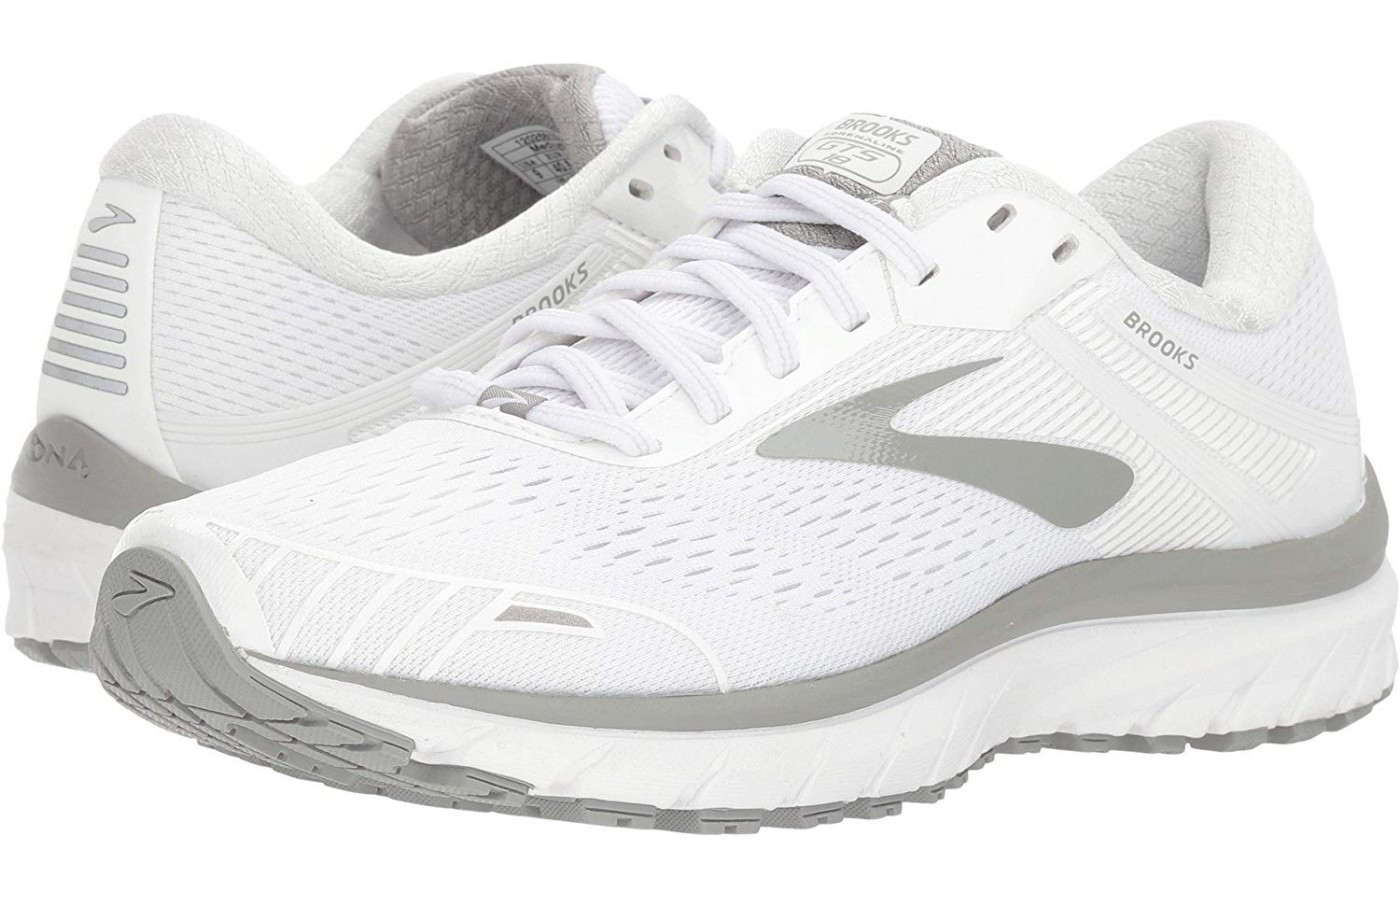 The white color variation of the Brooks Adrenaline GTS 18